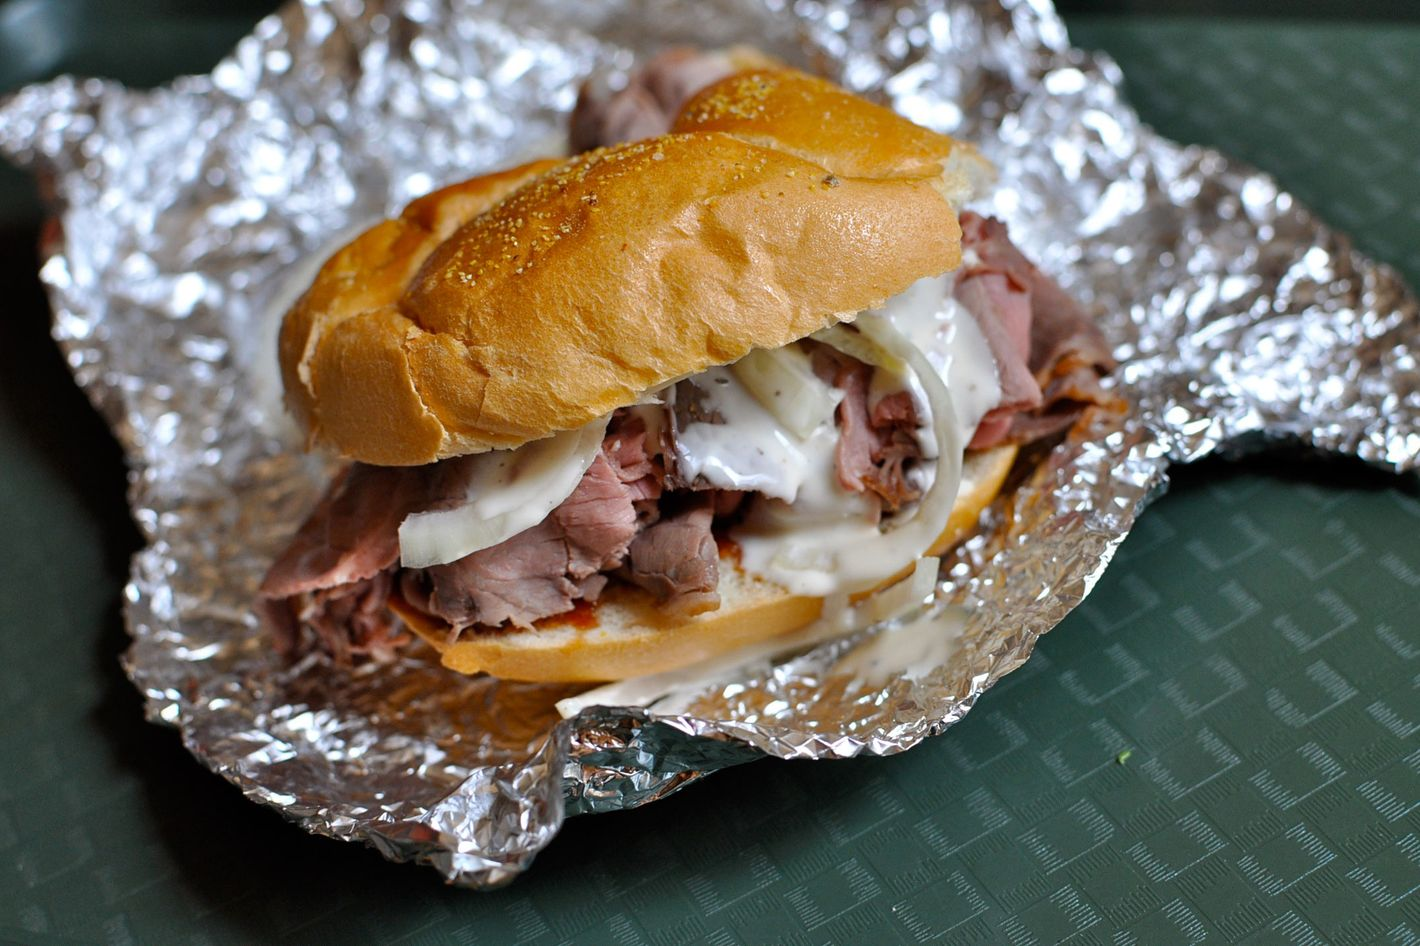 http://pixel.nymag.com/imgs/daily/grub/2013/05/15/15-sandwiches-pit-beef-chaps.jpg